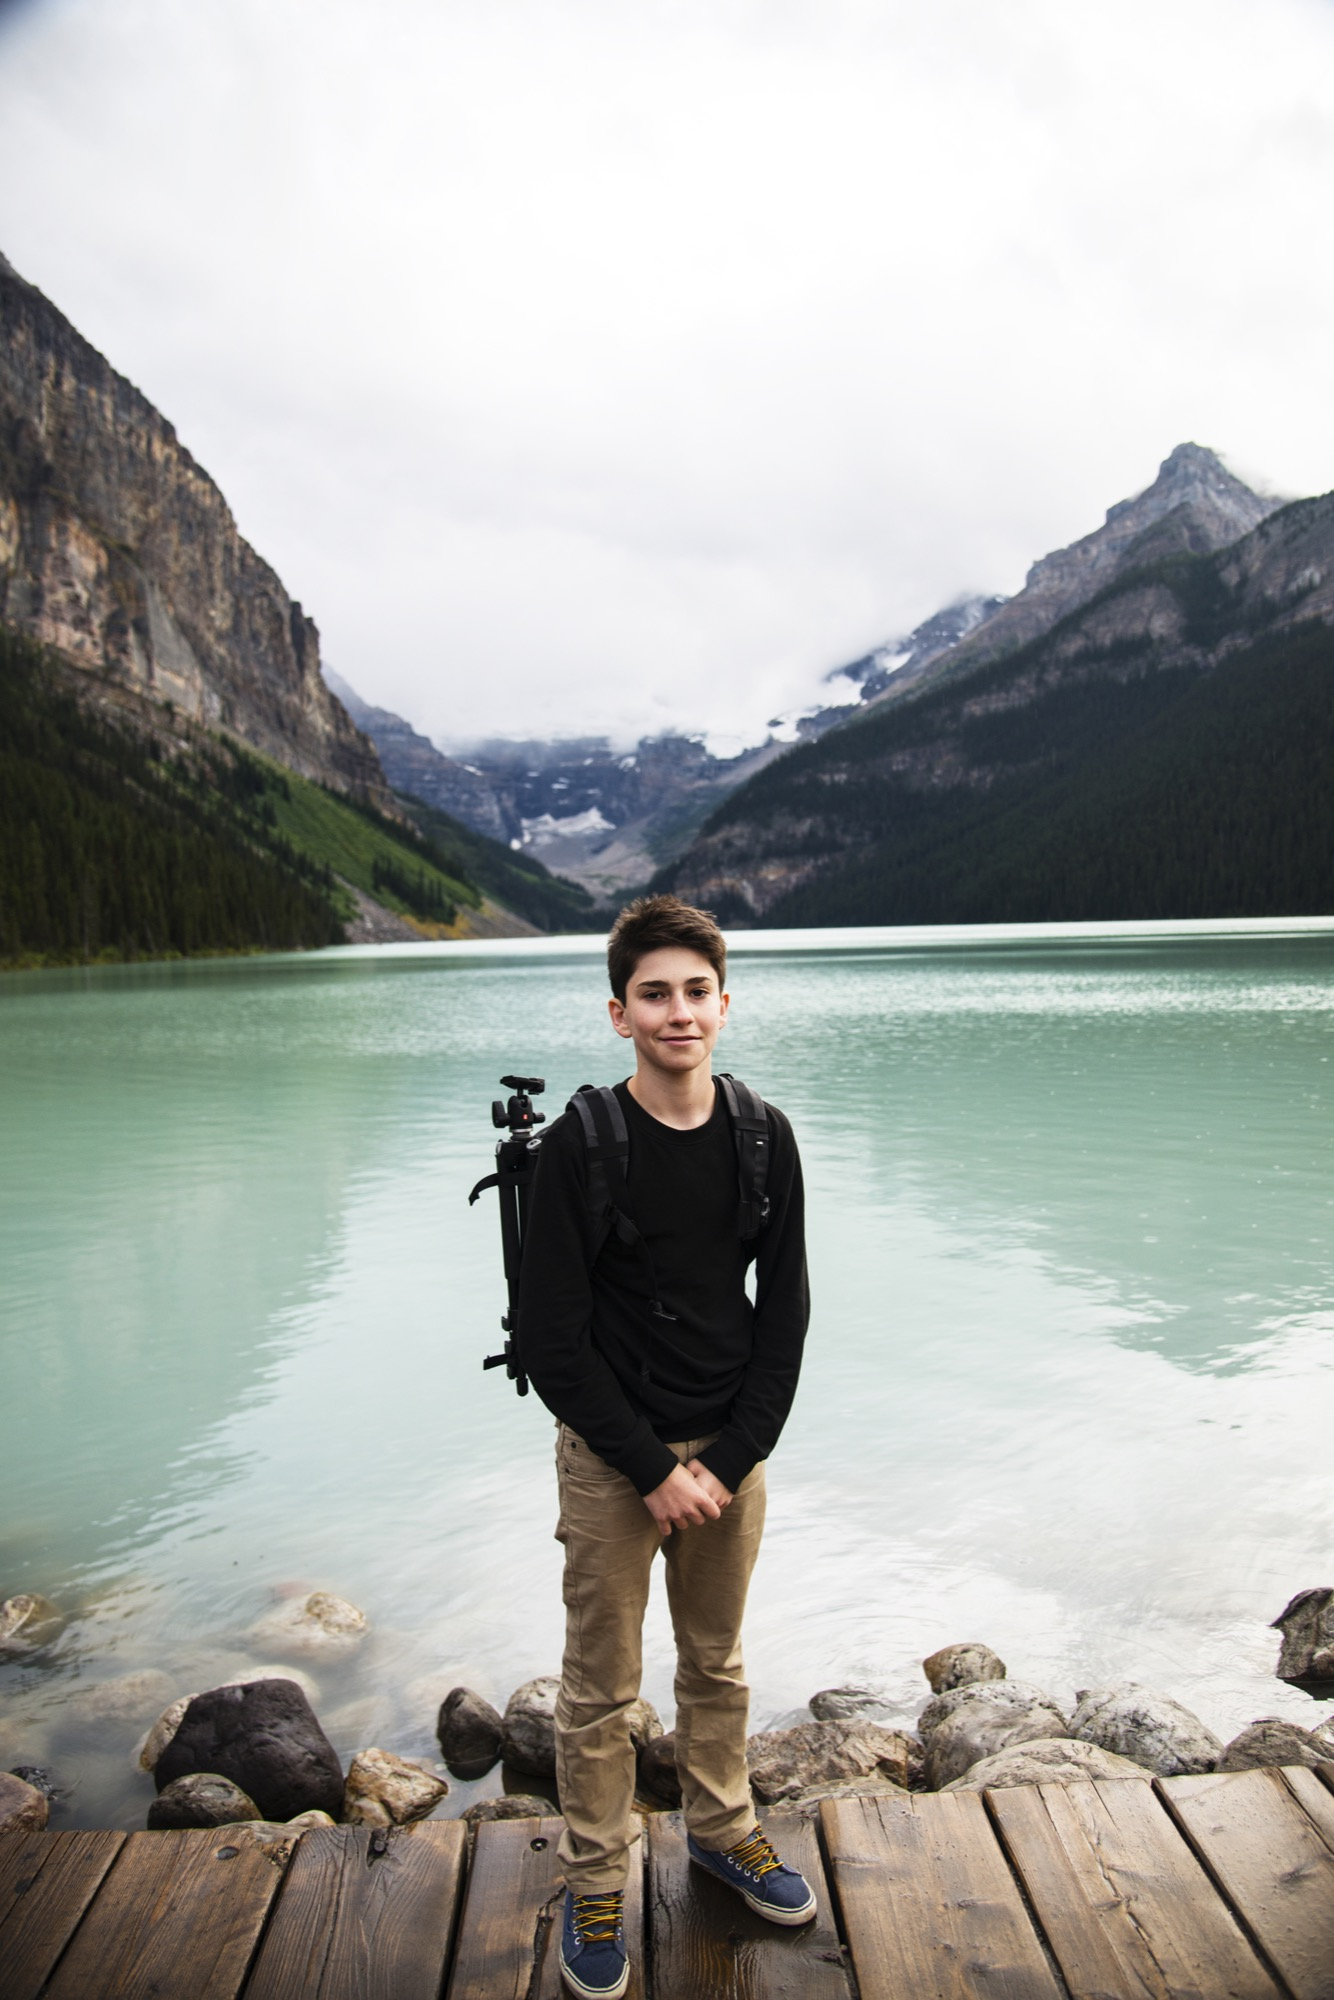 Photographer Joe Goldberg at Lake Louise in Alberta, Canada